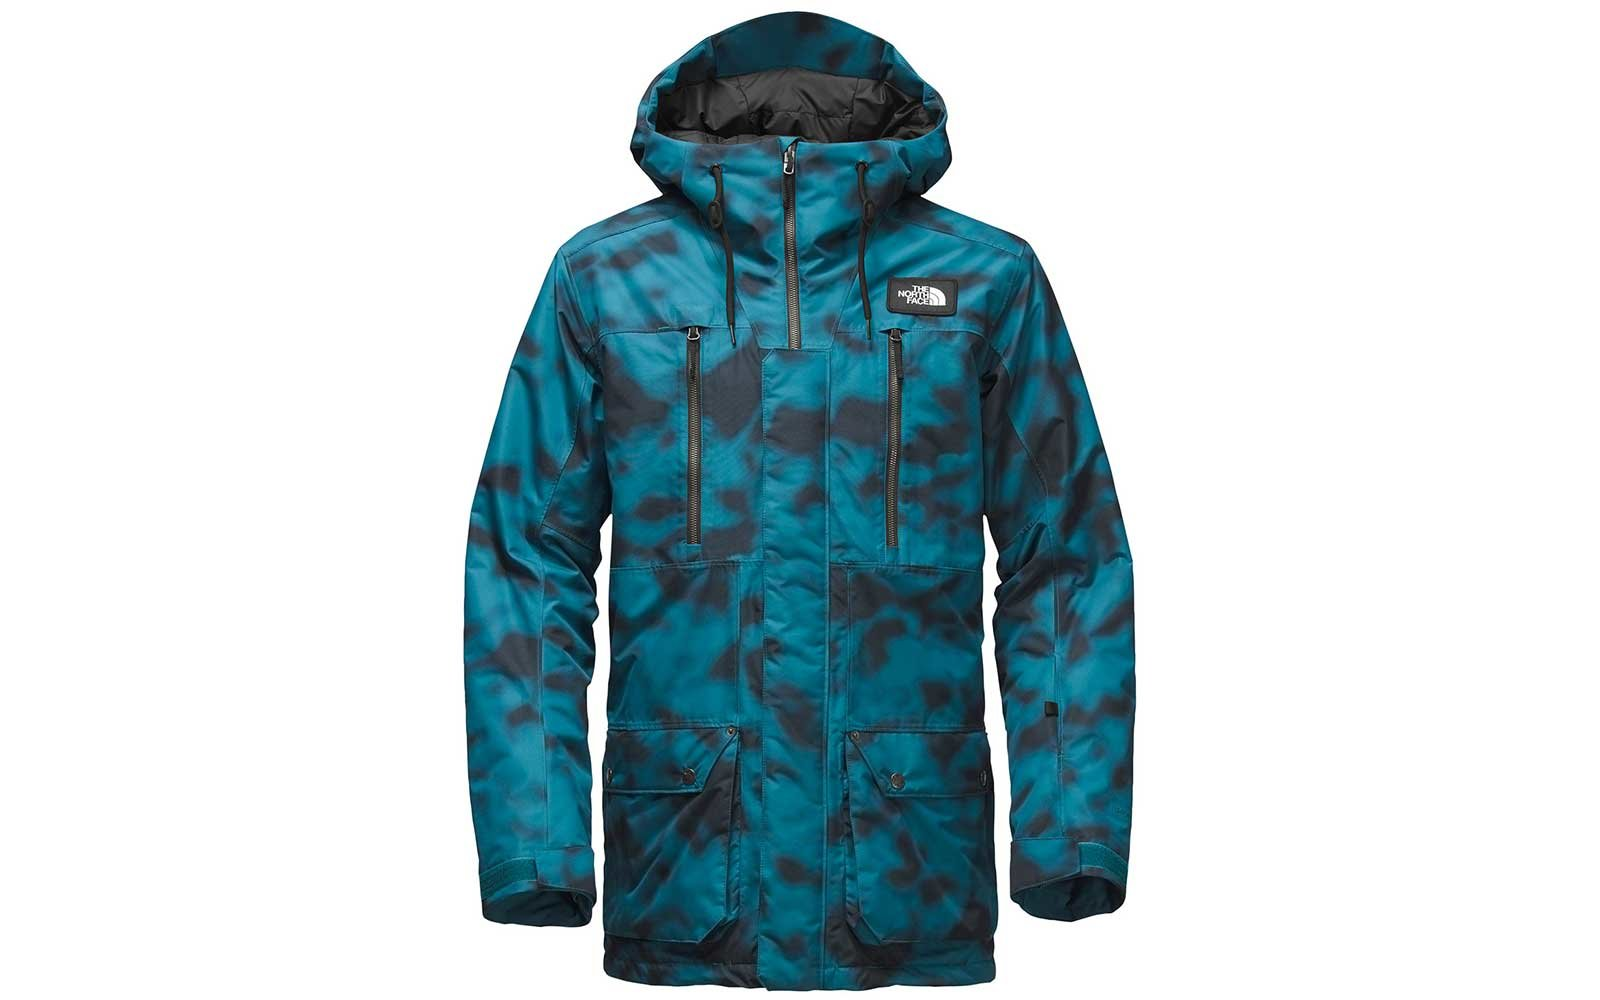 Teal print ski jacket by The North Face